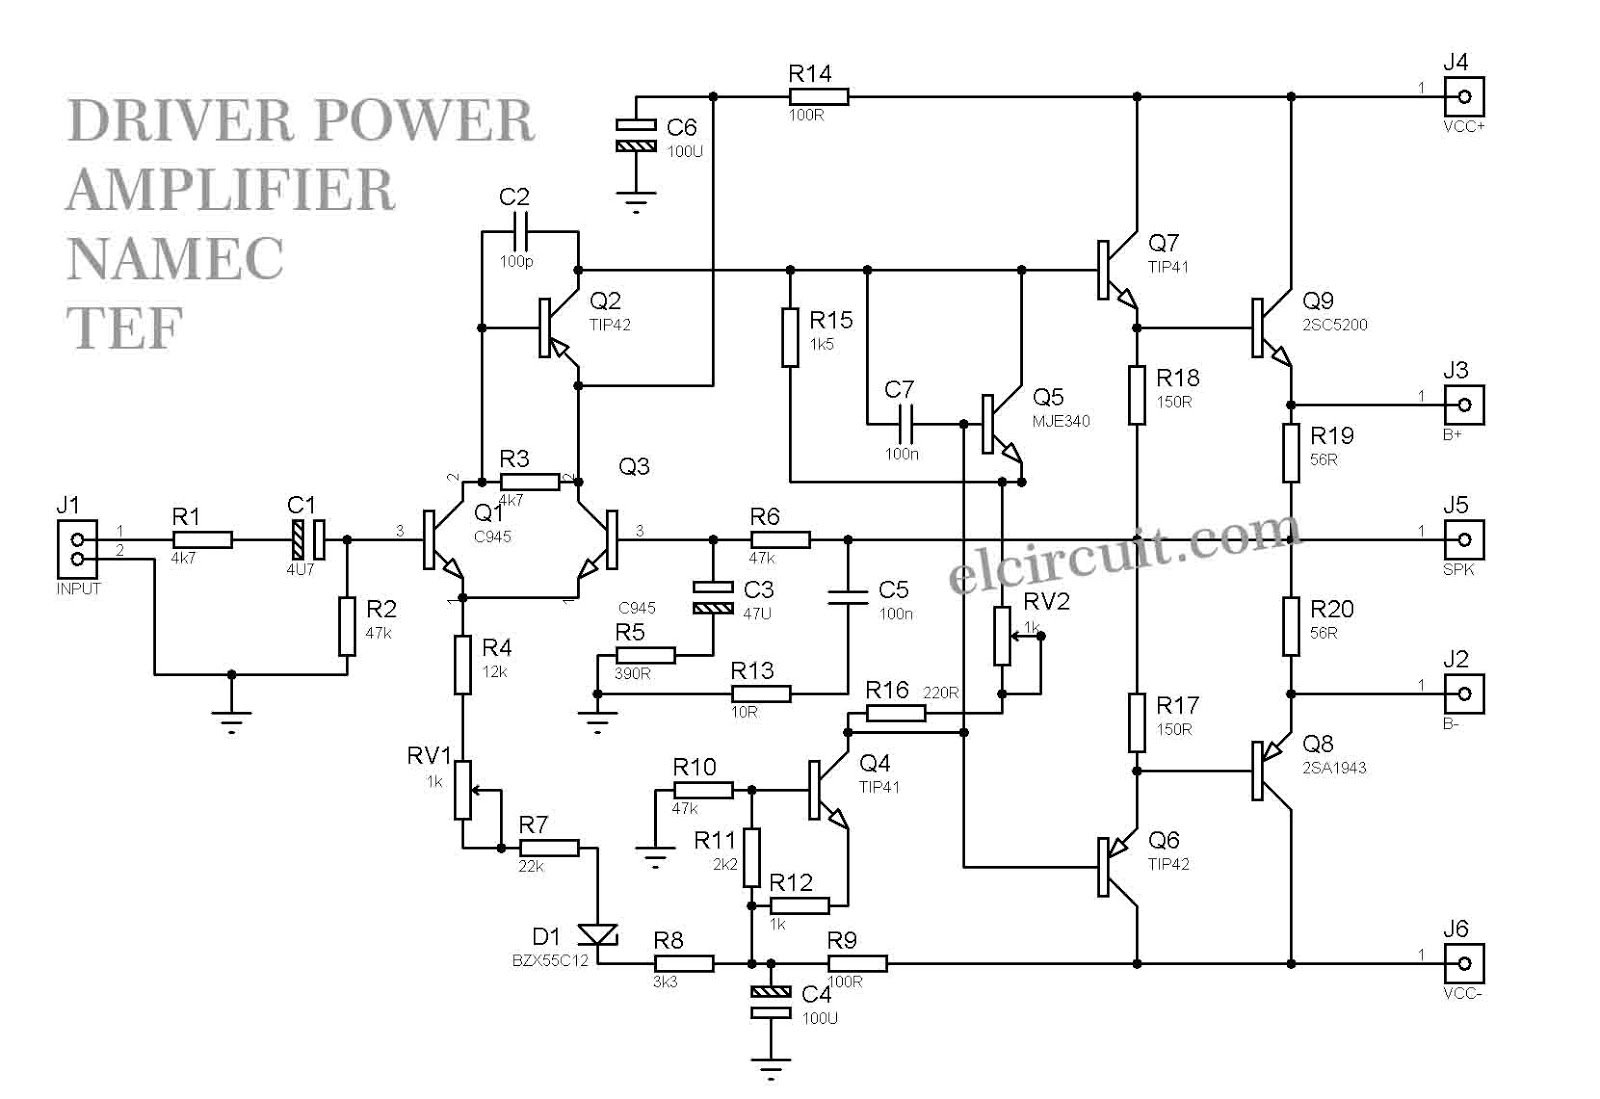 hight resolution of 1000w driver power amplifier namec tef electronic circuit subwoofer amplifier circuit diagram 1000w